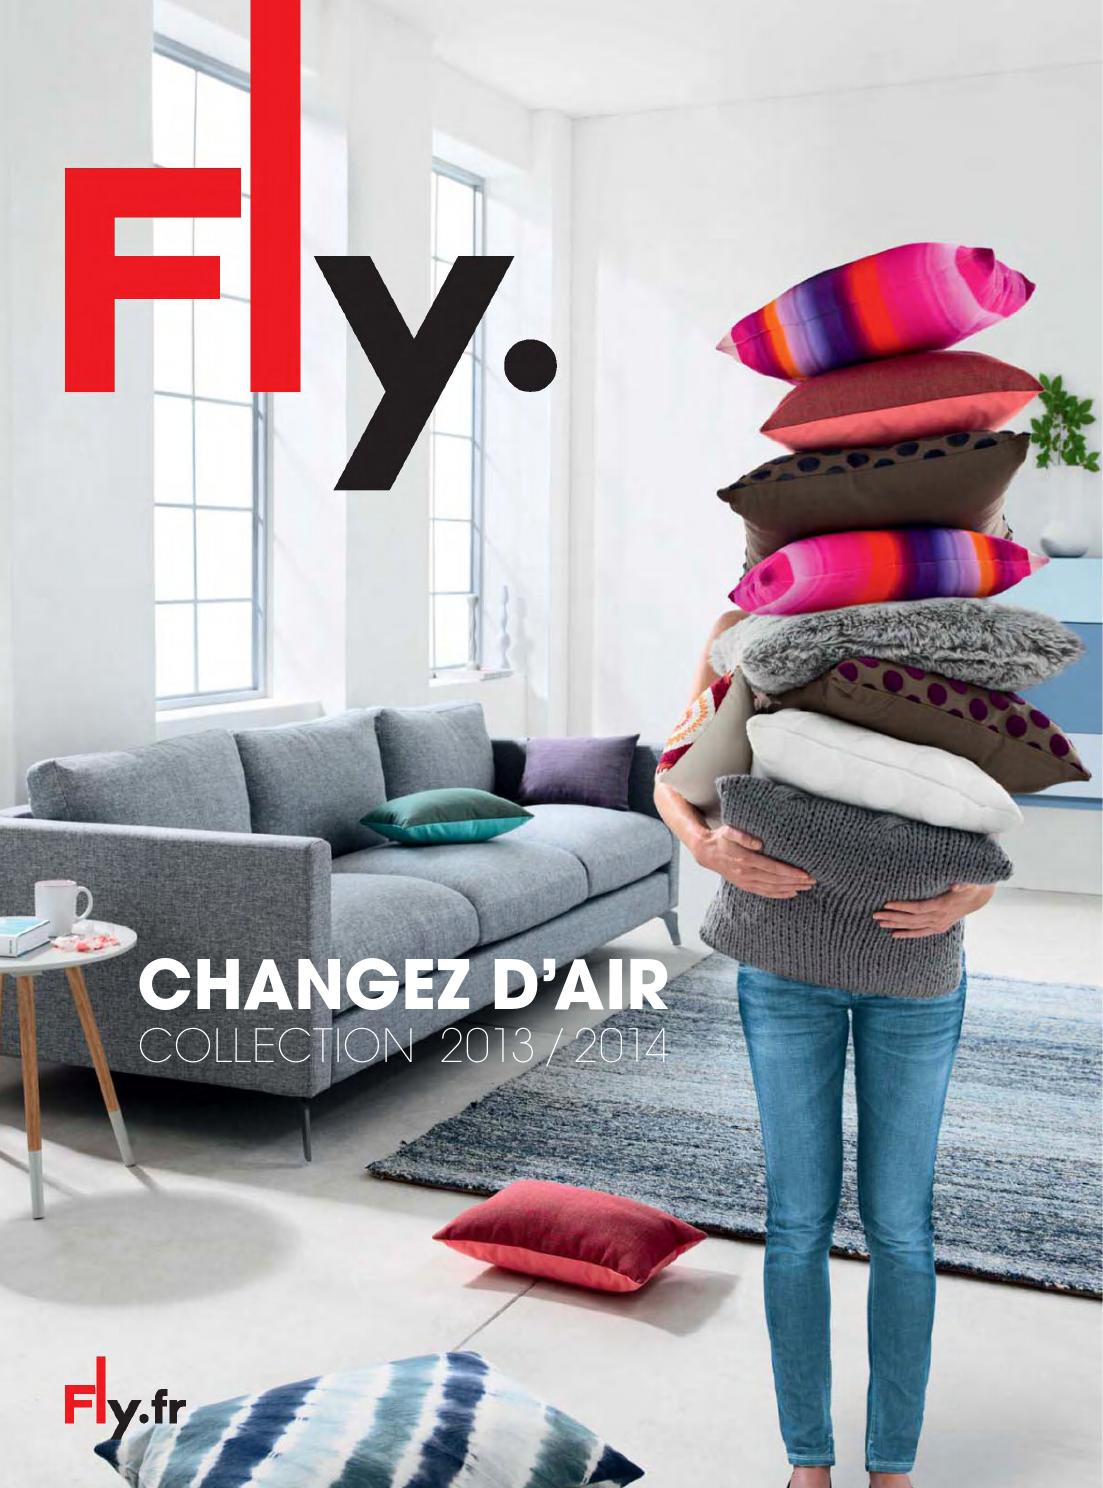 Catalogue Fly - Collection 2013/2014 By Joe Monroe - Issuu avec Canapé Fly Convertible